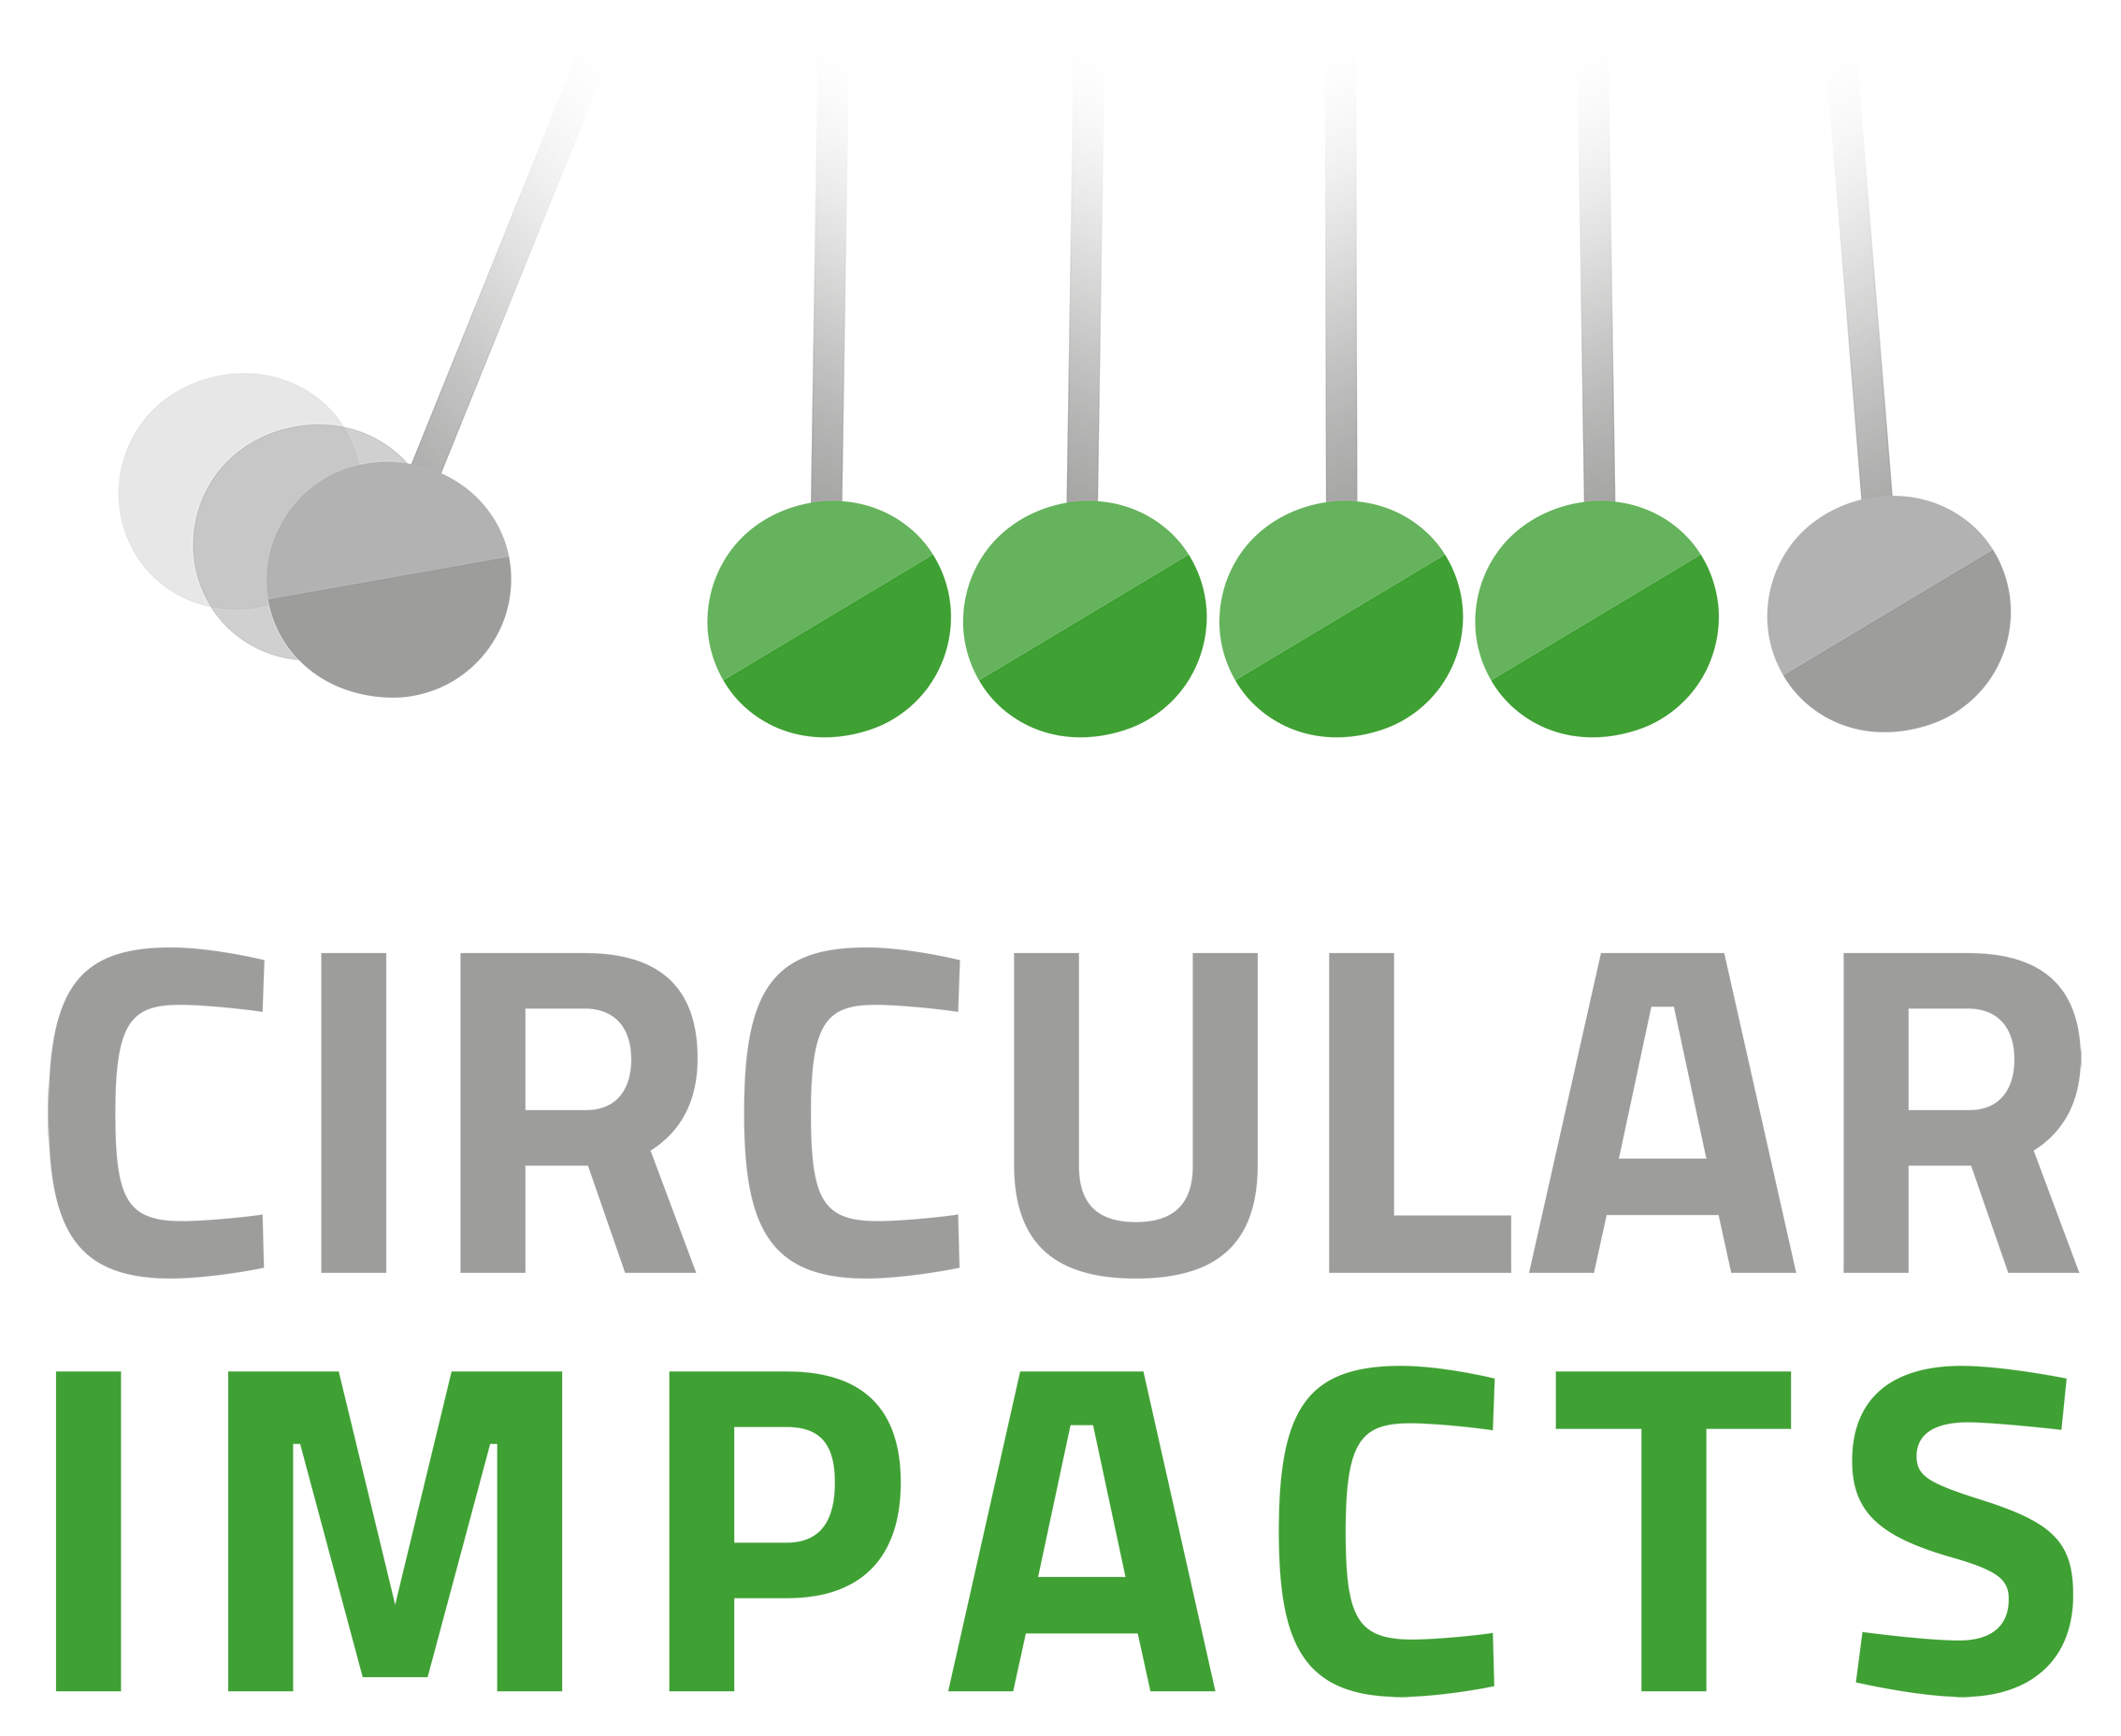 Measuring the IMPACTS of the Transition to the CIRCULAR Economy.